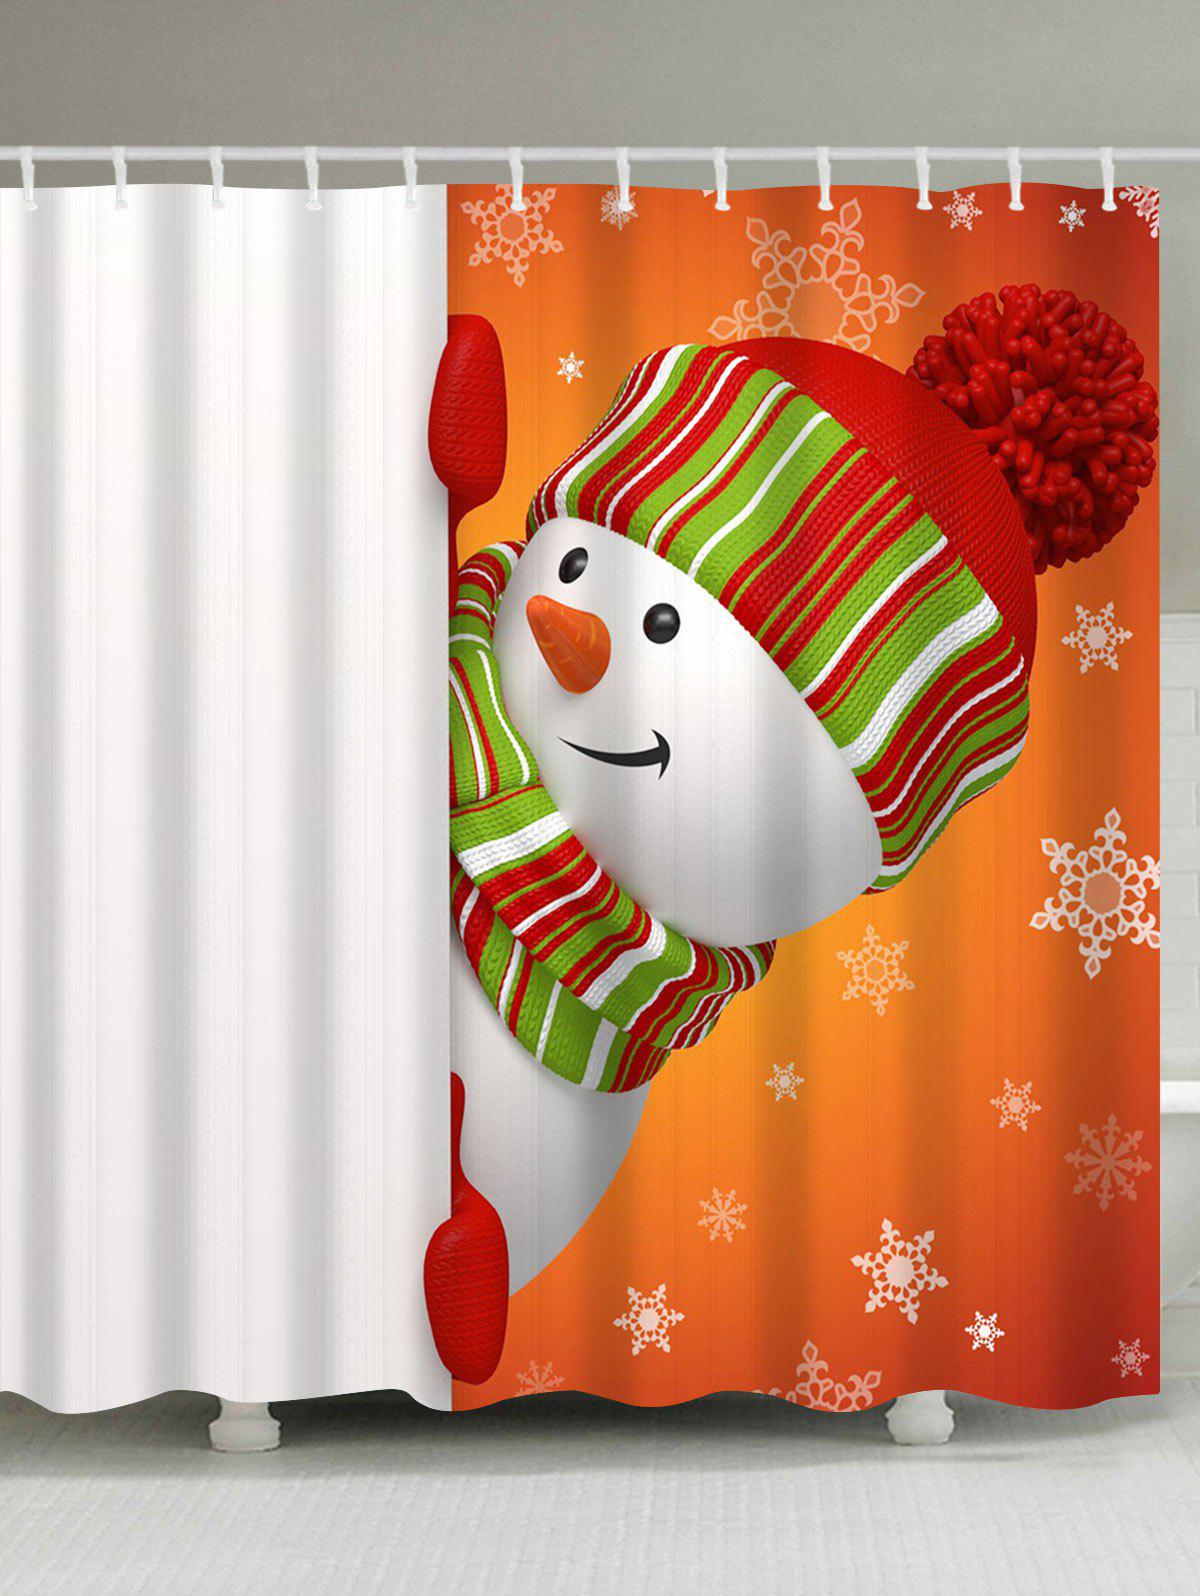 Waterproof Christmas Naughty Snowman Bath CurtainHOME<br><br>Size: W71 INCH * L79 INCH; Color: WHITE AND ORANGE; Products Type: Shower Curtains; Materials: Polyester; Pattern: Snowman; Style: Festival; Number of Hook Holes: W59 inch*L71 inch: 10; W71 inch*L71 inch: 12; W71 inch*L79 inch: 12; Package Contents: 1 x Shower Curtain 1 x Hooks (Set);